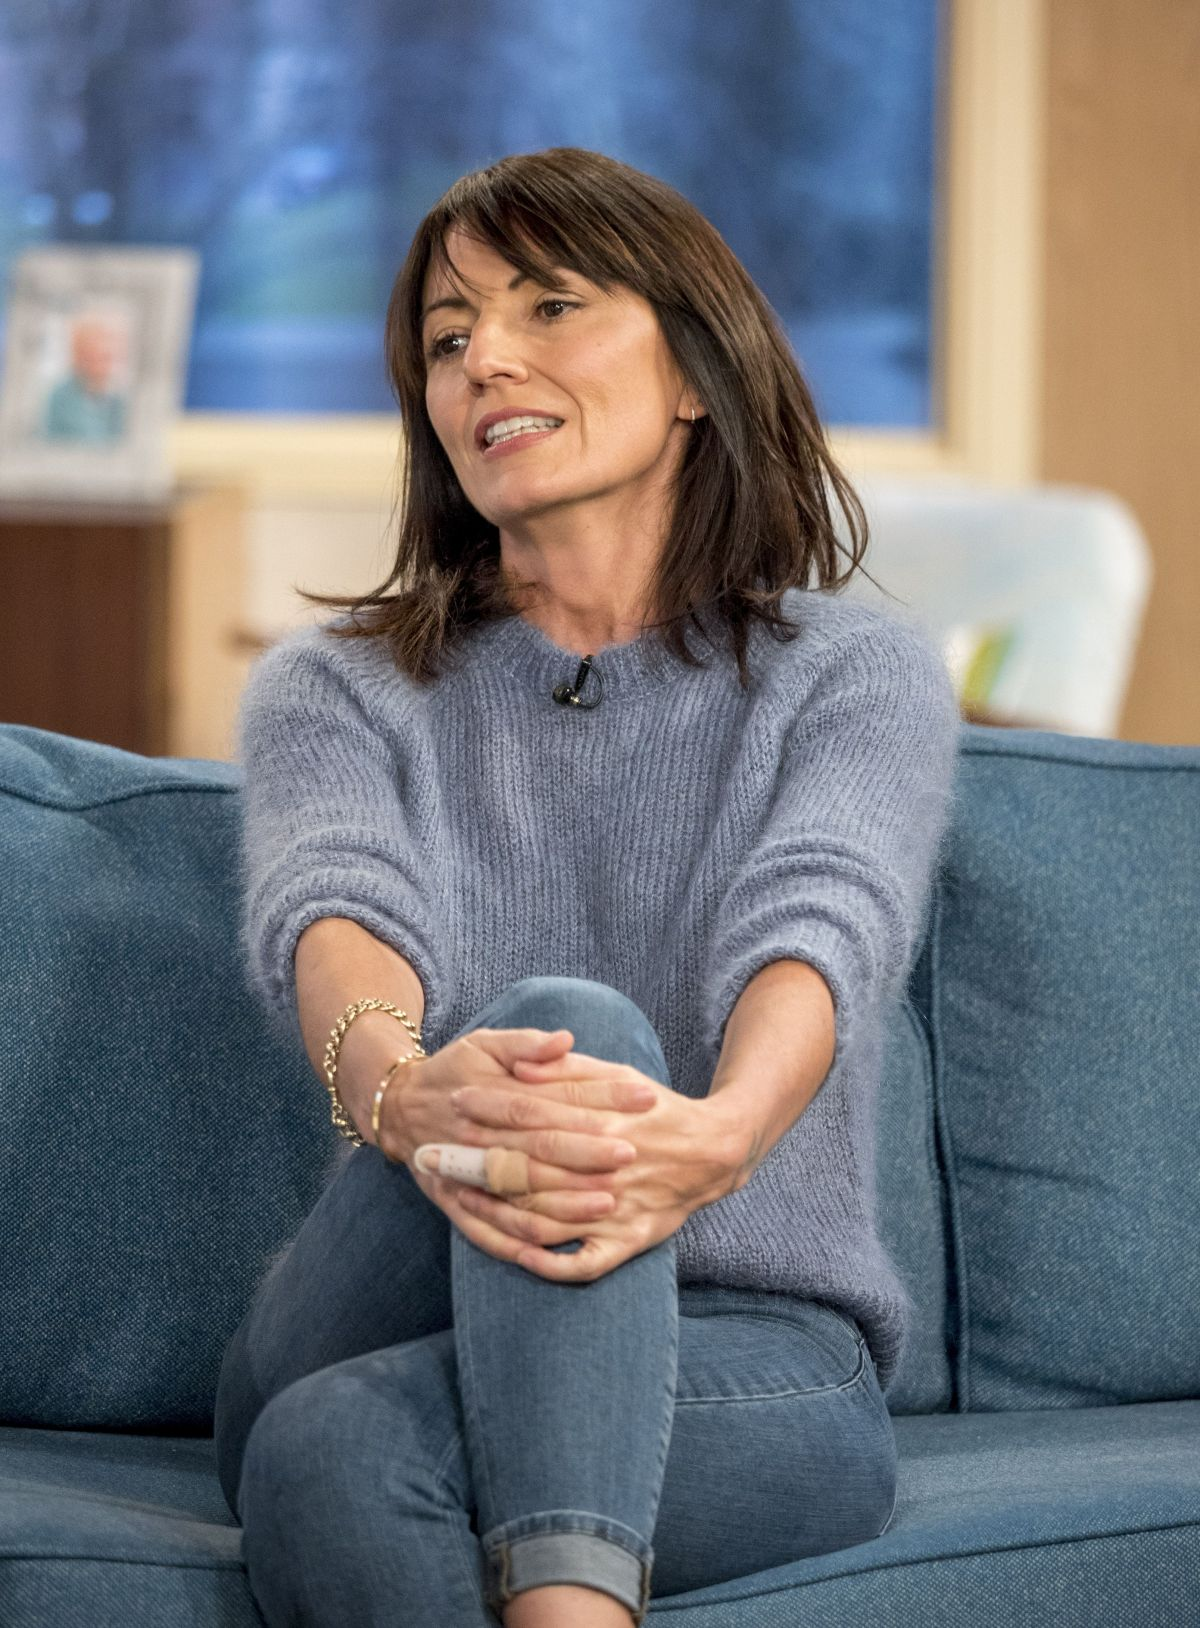 davina mccall at this morning show in london 01 09 2018